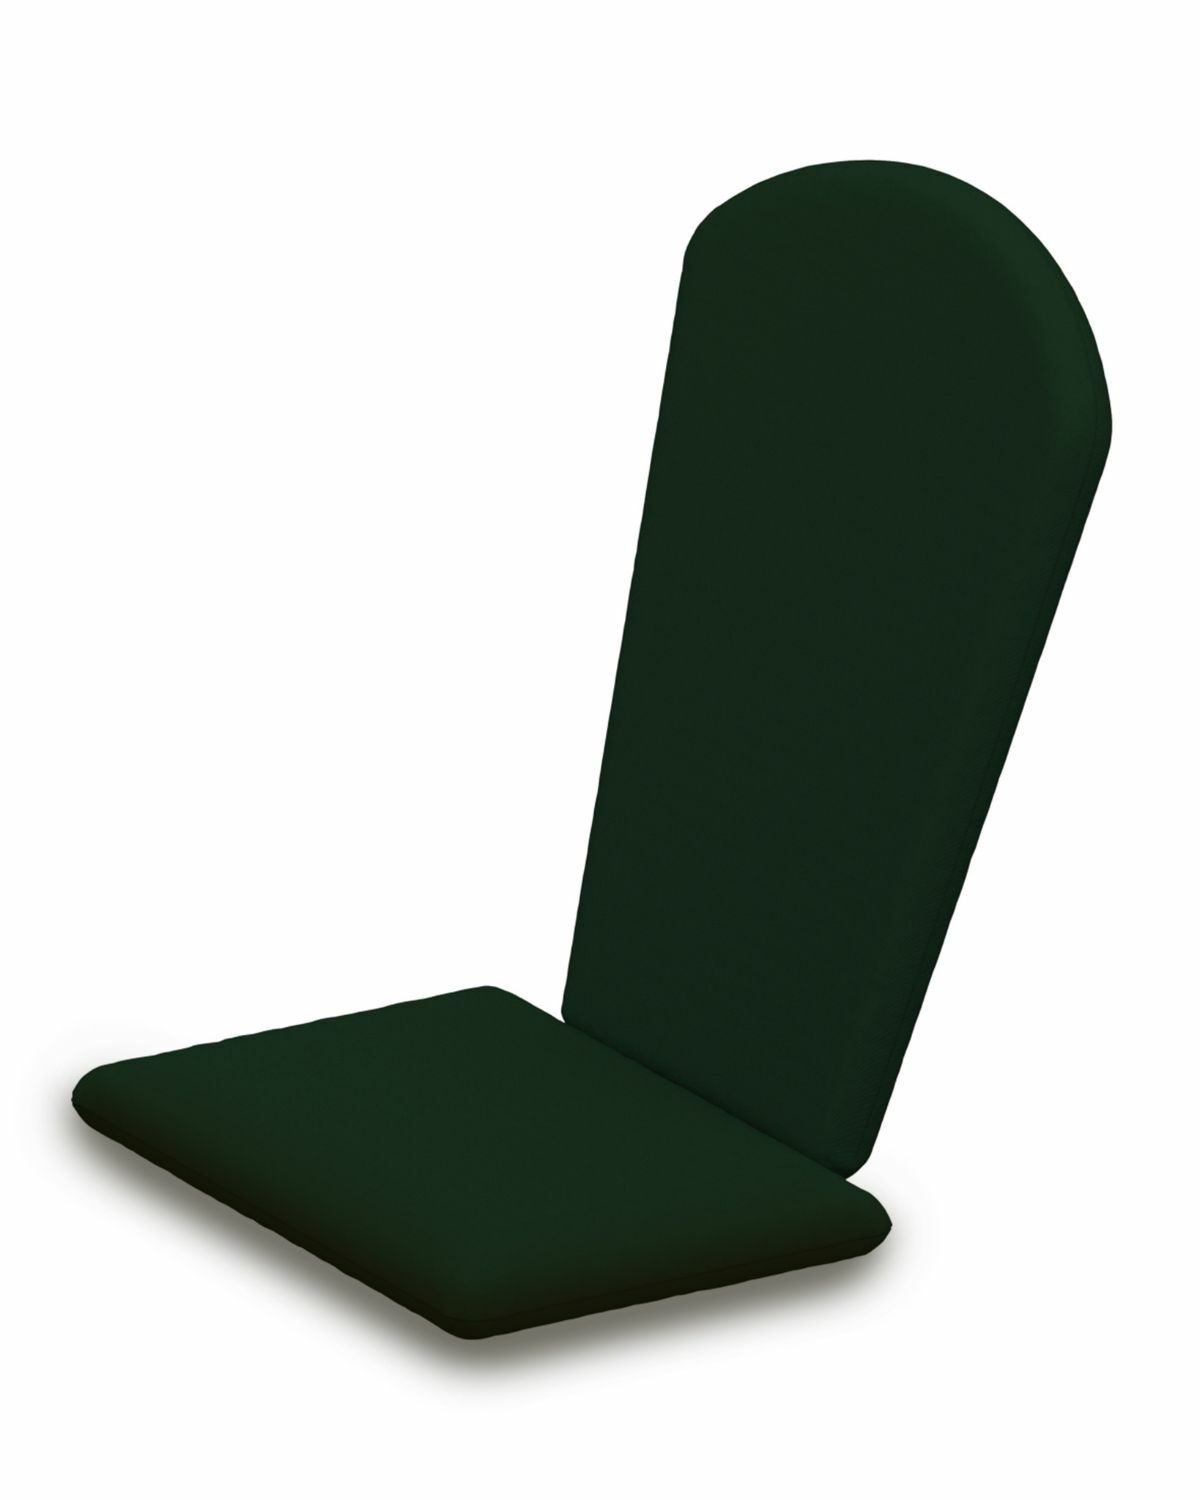 Indoor/Outdoor Sunbrella Adirondack Chair Cushion Fabric: Forest Green